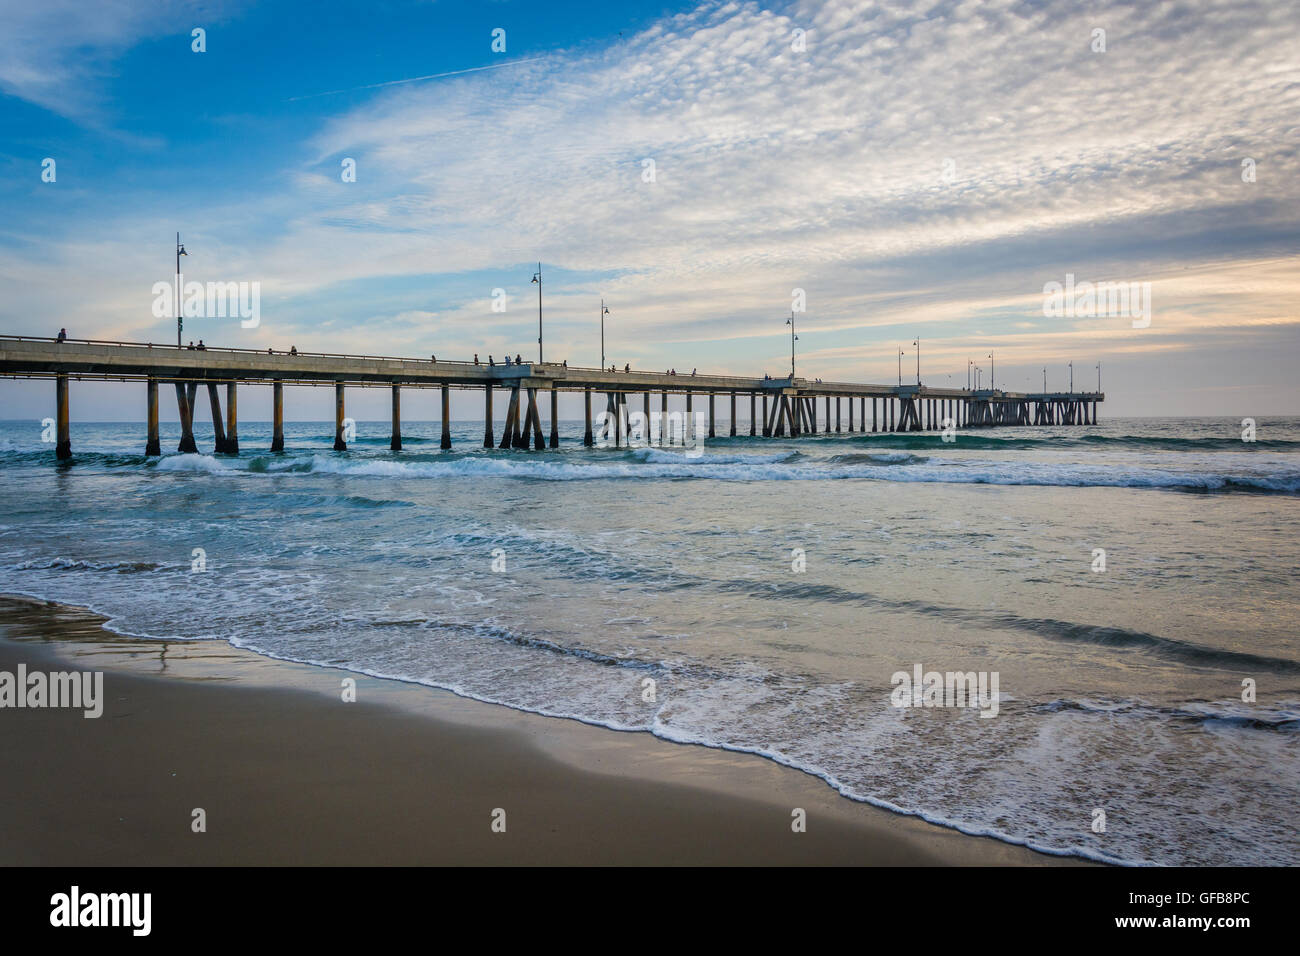 The pier in Venice Beach, Los Angeles, California. - Stock Image